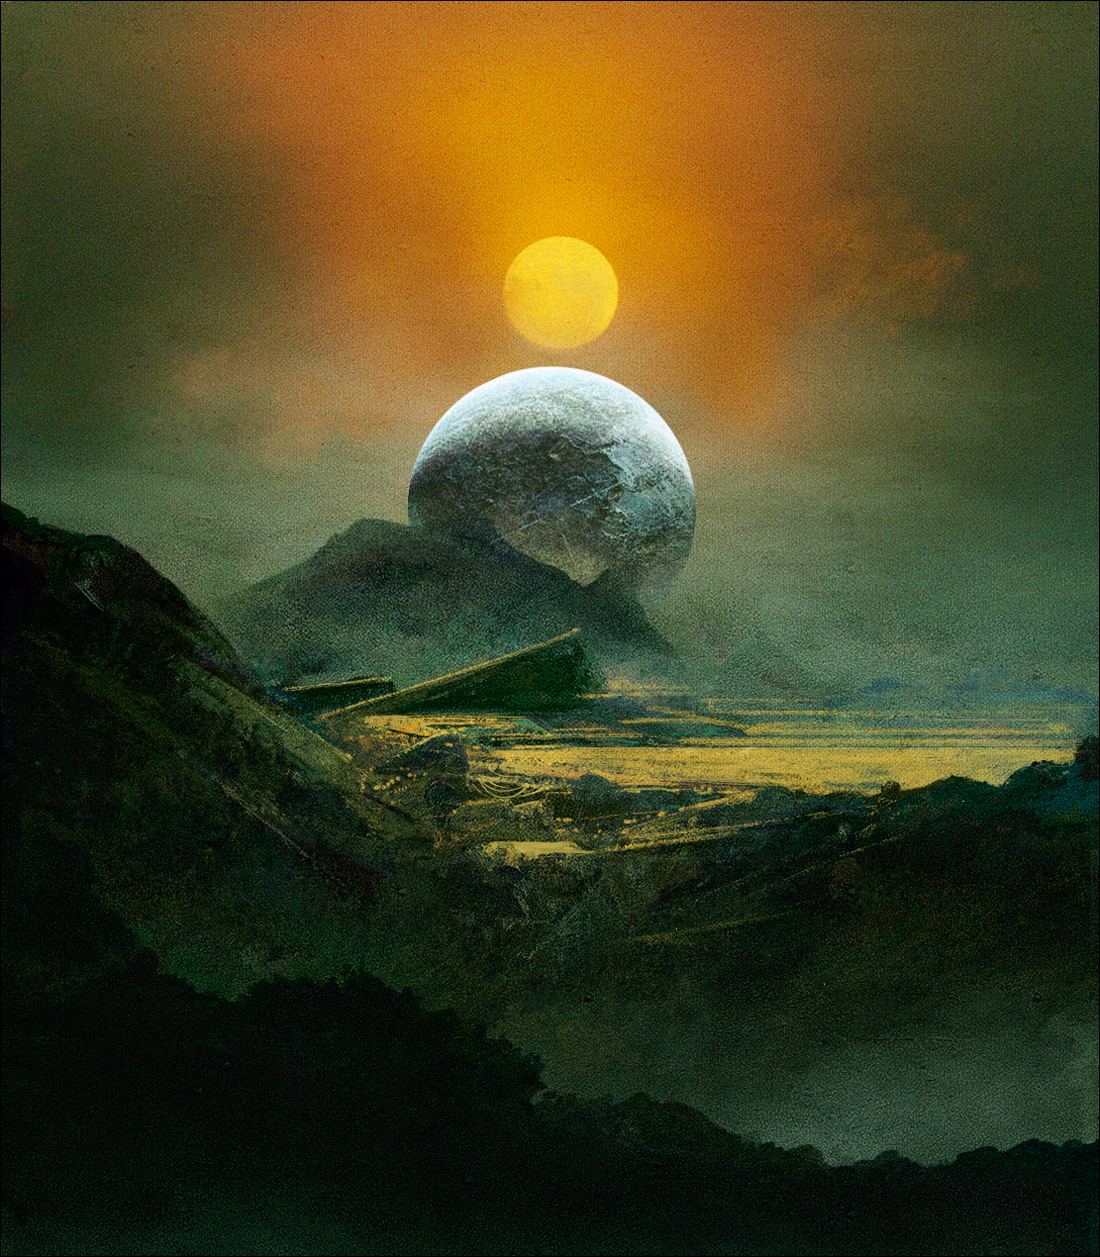 Dan McPharlin - Transmission 2